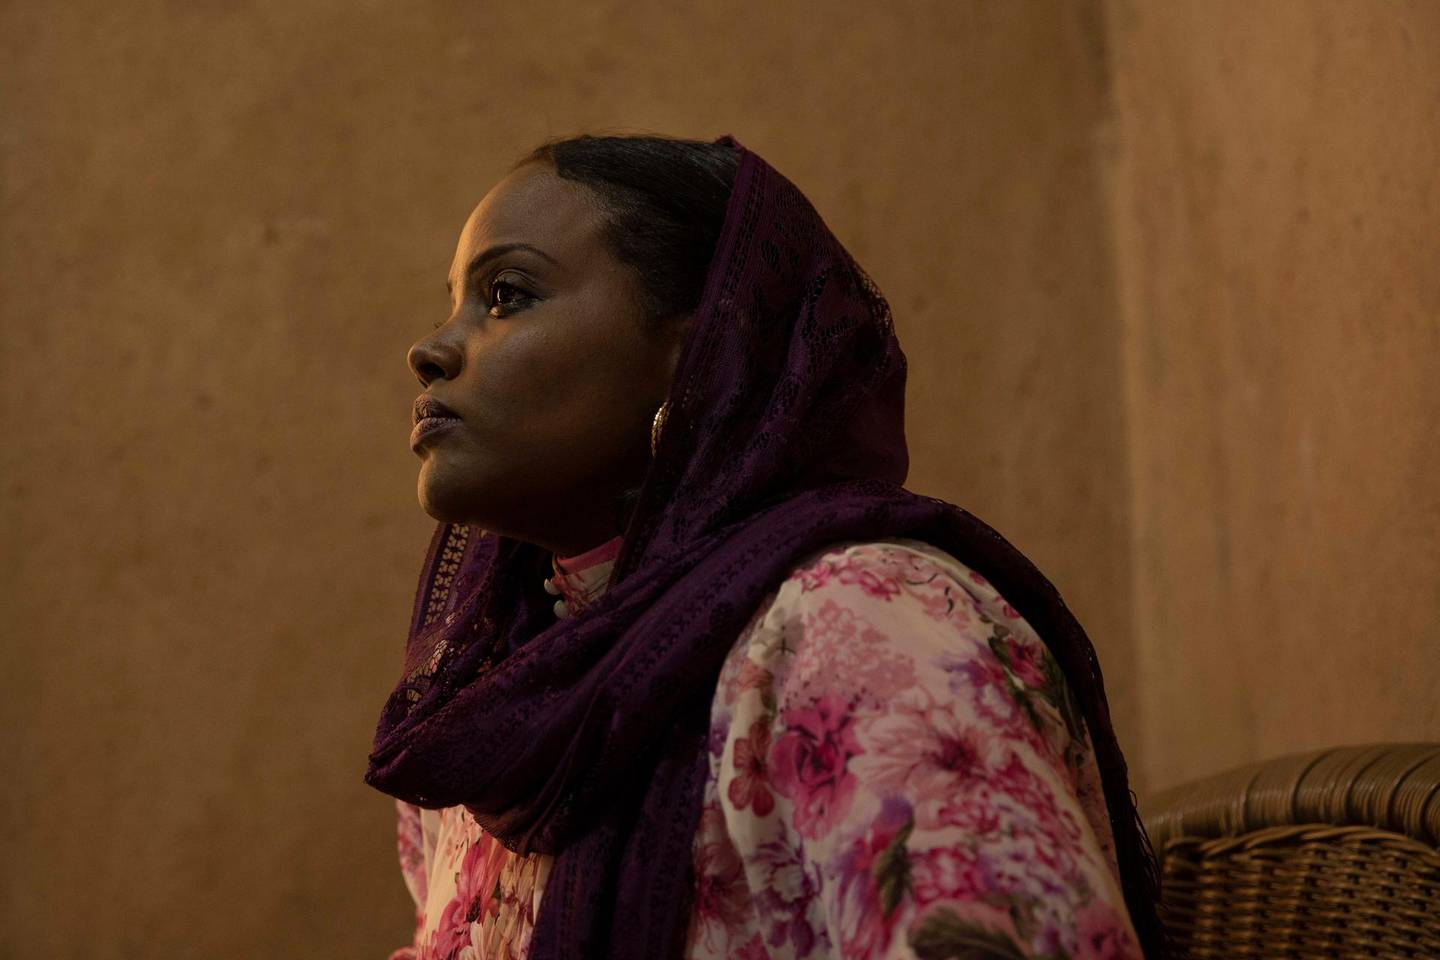 In this Jan. 11, 2020 photo, Sudanese psychologist Sulima Ishaq Sharif listens during an interview, in Khartoum, Sudan. Over the past year, activists have been steadily documenting rape victims from the June 3, 2019 crackdown on a protest camp. They believe it was a coordinated campaign ordered by the military's top leadership to crush the spirit of the pro-democracy movement. Sharif, who at the time headed a trauma center at Khartoum's Ahfad University said her center documented at least 64 rape victims. The number is likely considerably higher, since many victims don't speak because of fear or the stigma connected to rape. They said hundreds more women were sexually assaulted. (AP Photo/Nariman El-Mofty)